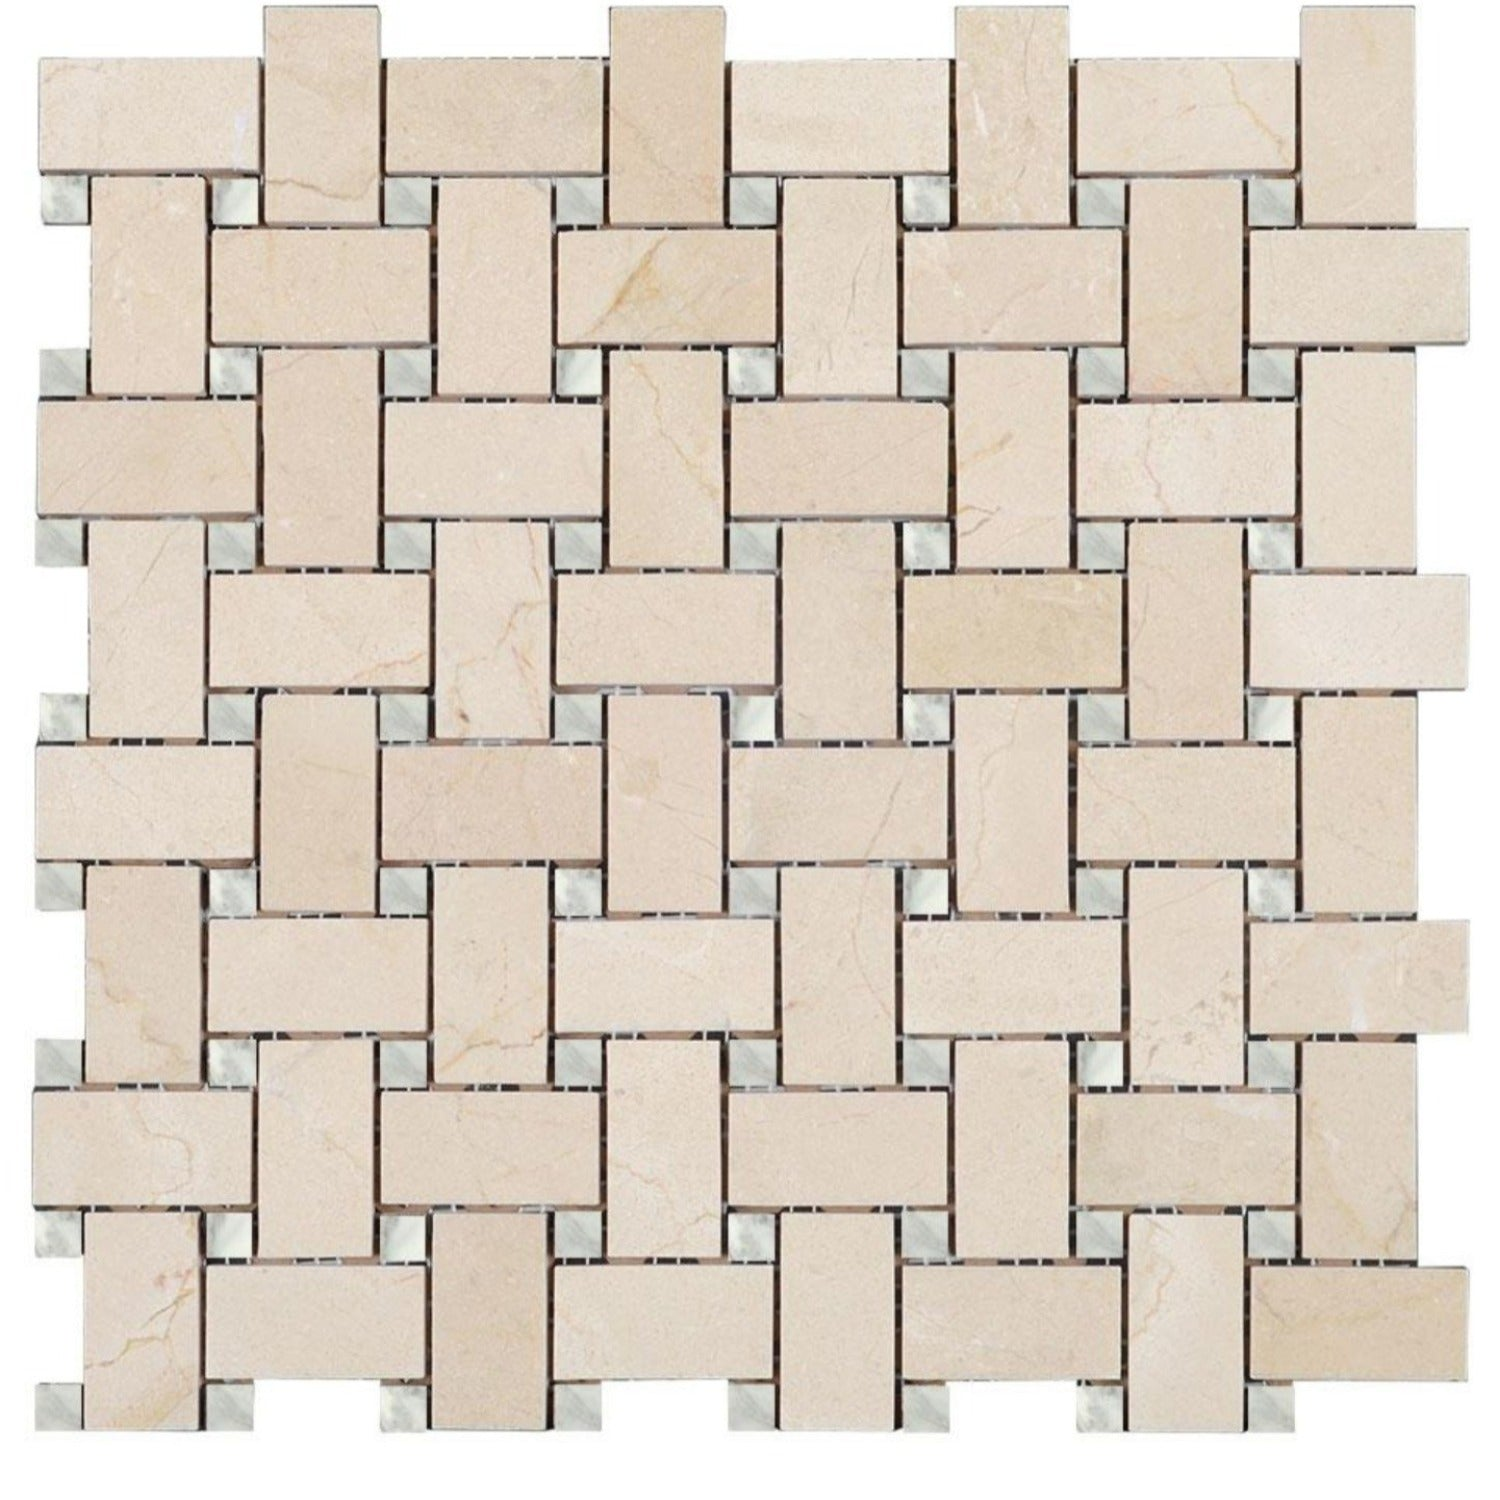 Crema Marfil Polished Marble Basketweave With White Carrara Marble Dot